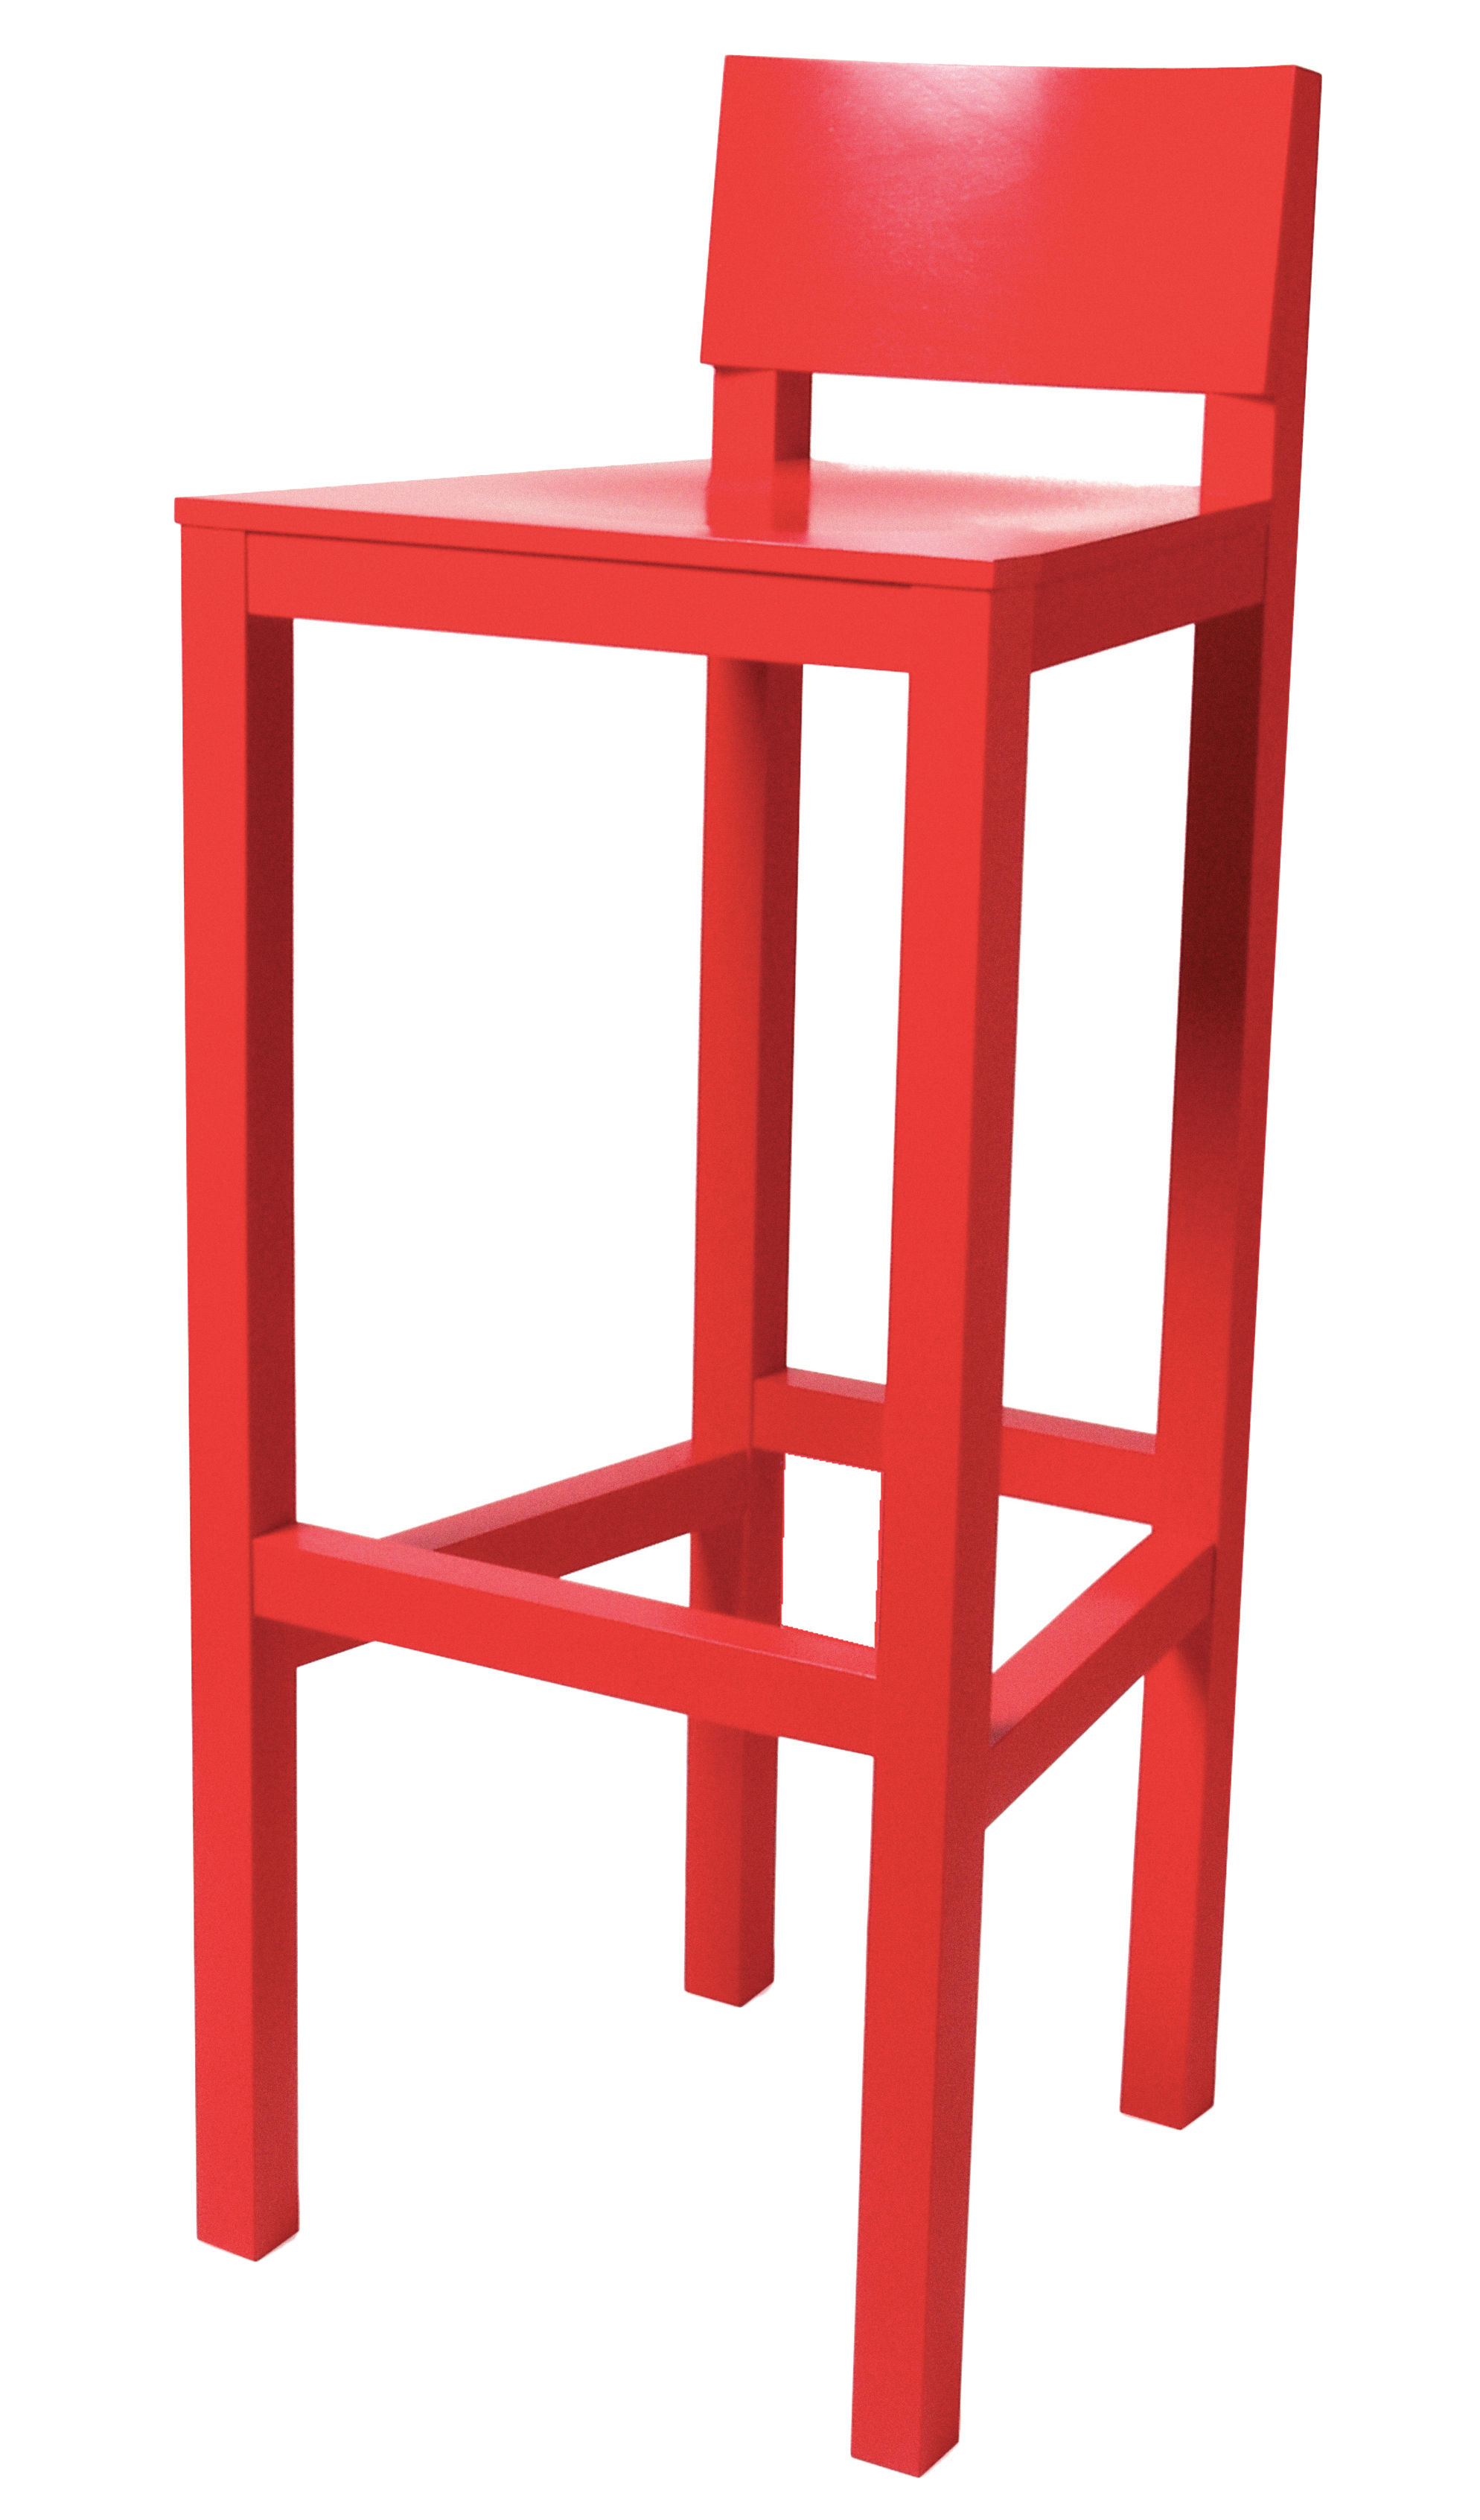 tabouret de bar avl h 80 cm bois rouge moooi. Black Bedroom Furniture Sets. Home Design Ideas